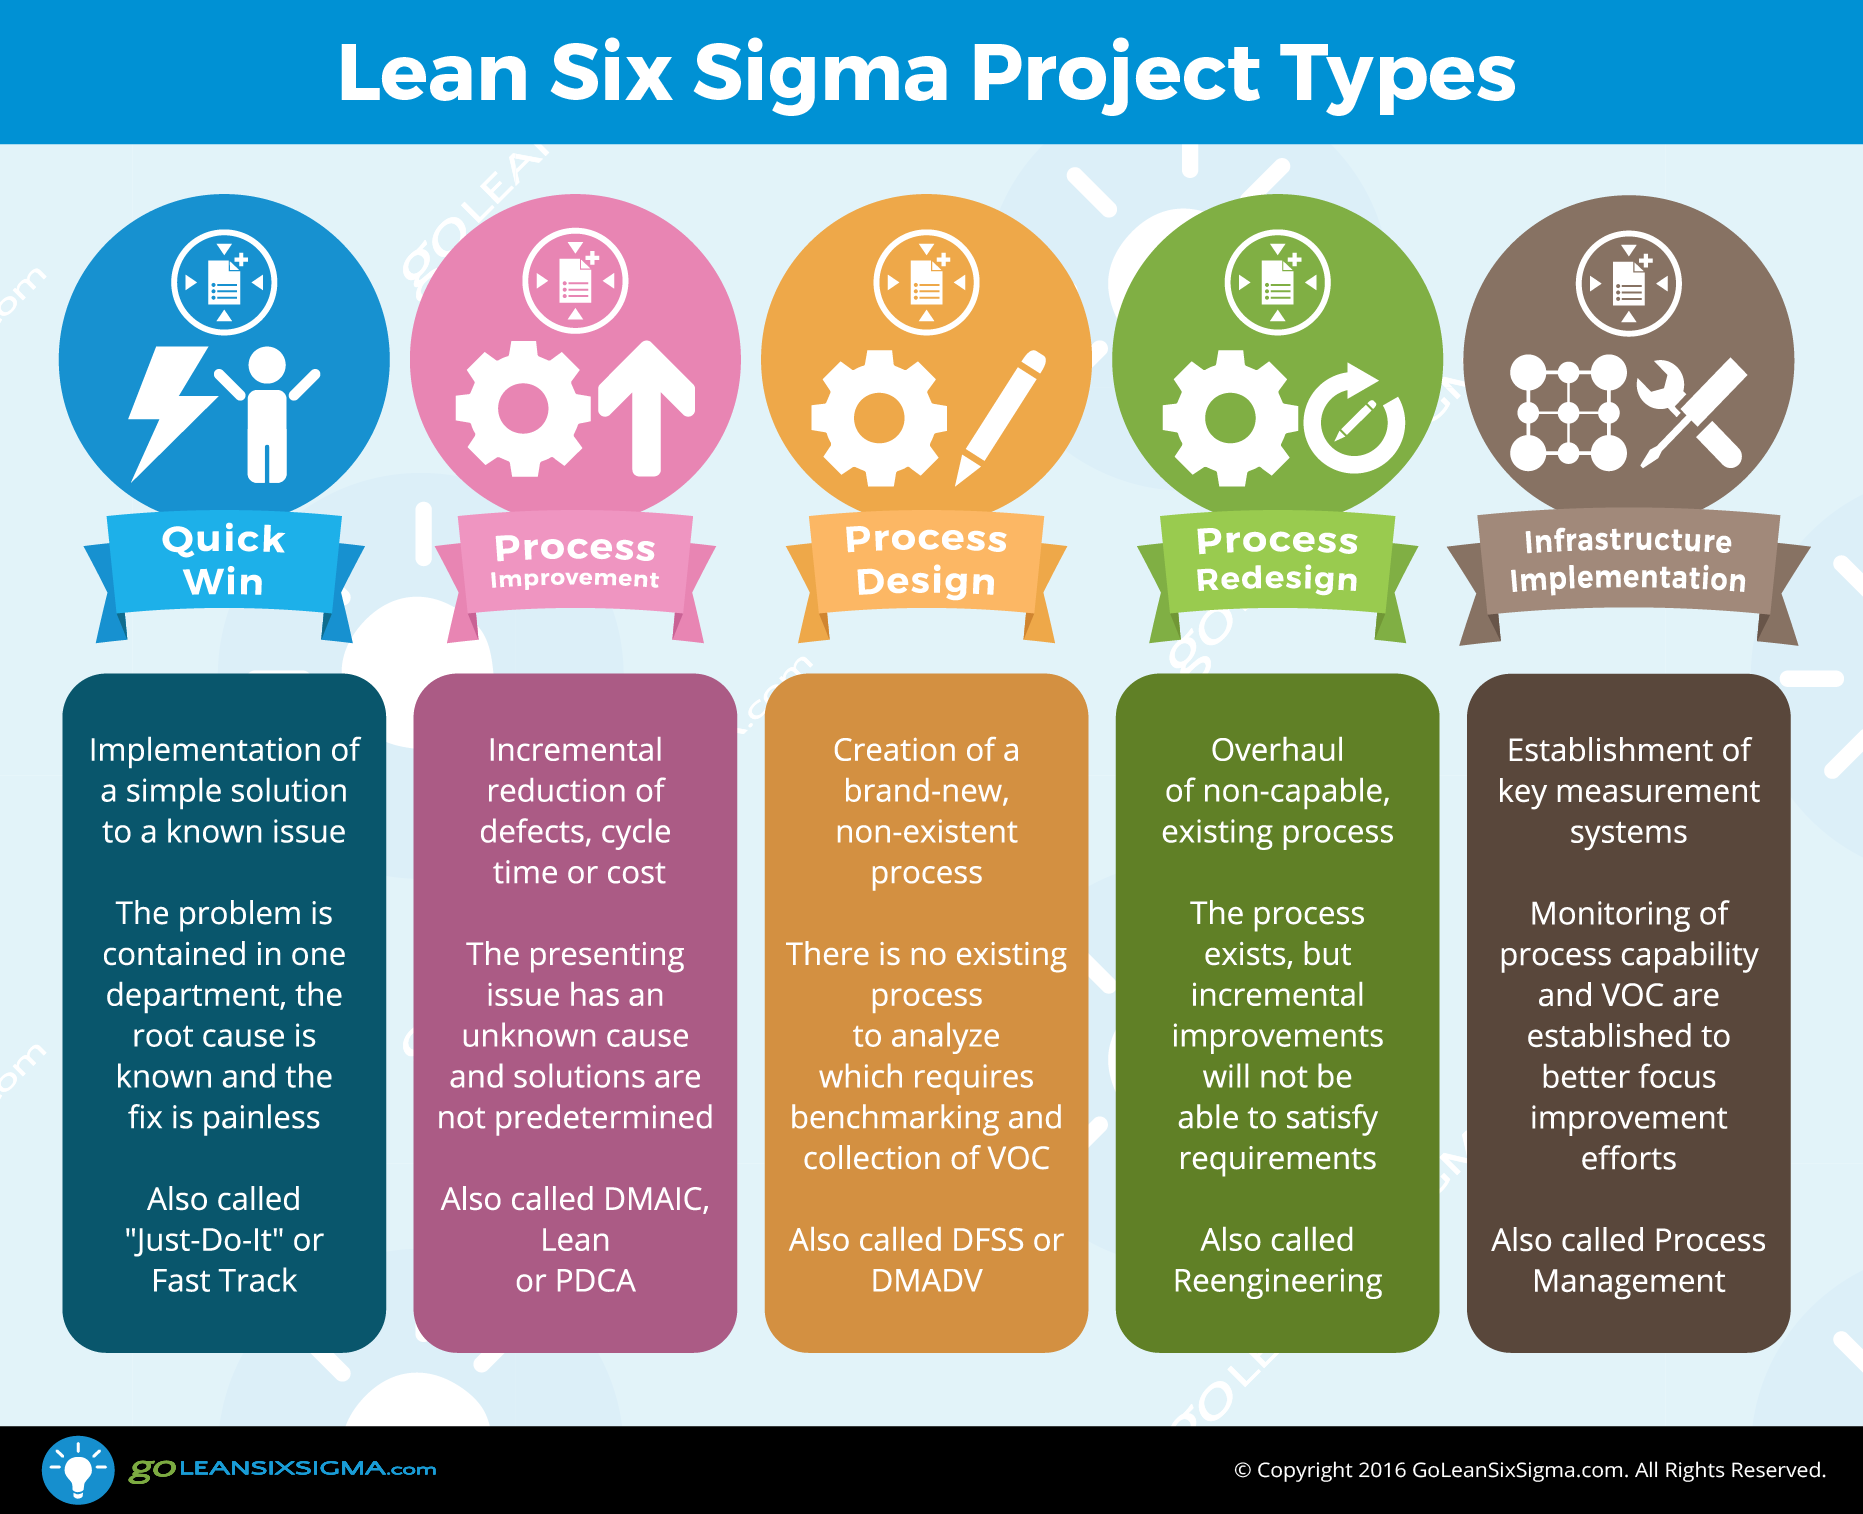 Lean six sigma project types goleansixsigma lean six sigma the project selection guide helps you determine which projects are good lean six sigma projects based on the impact it xflitez Gallery